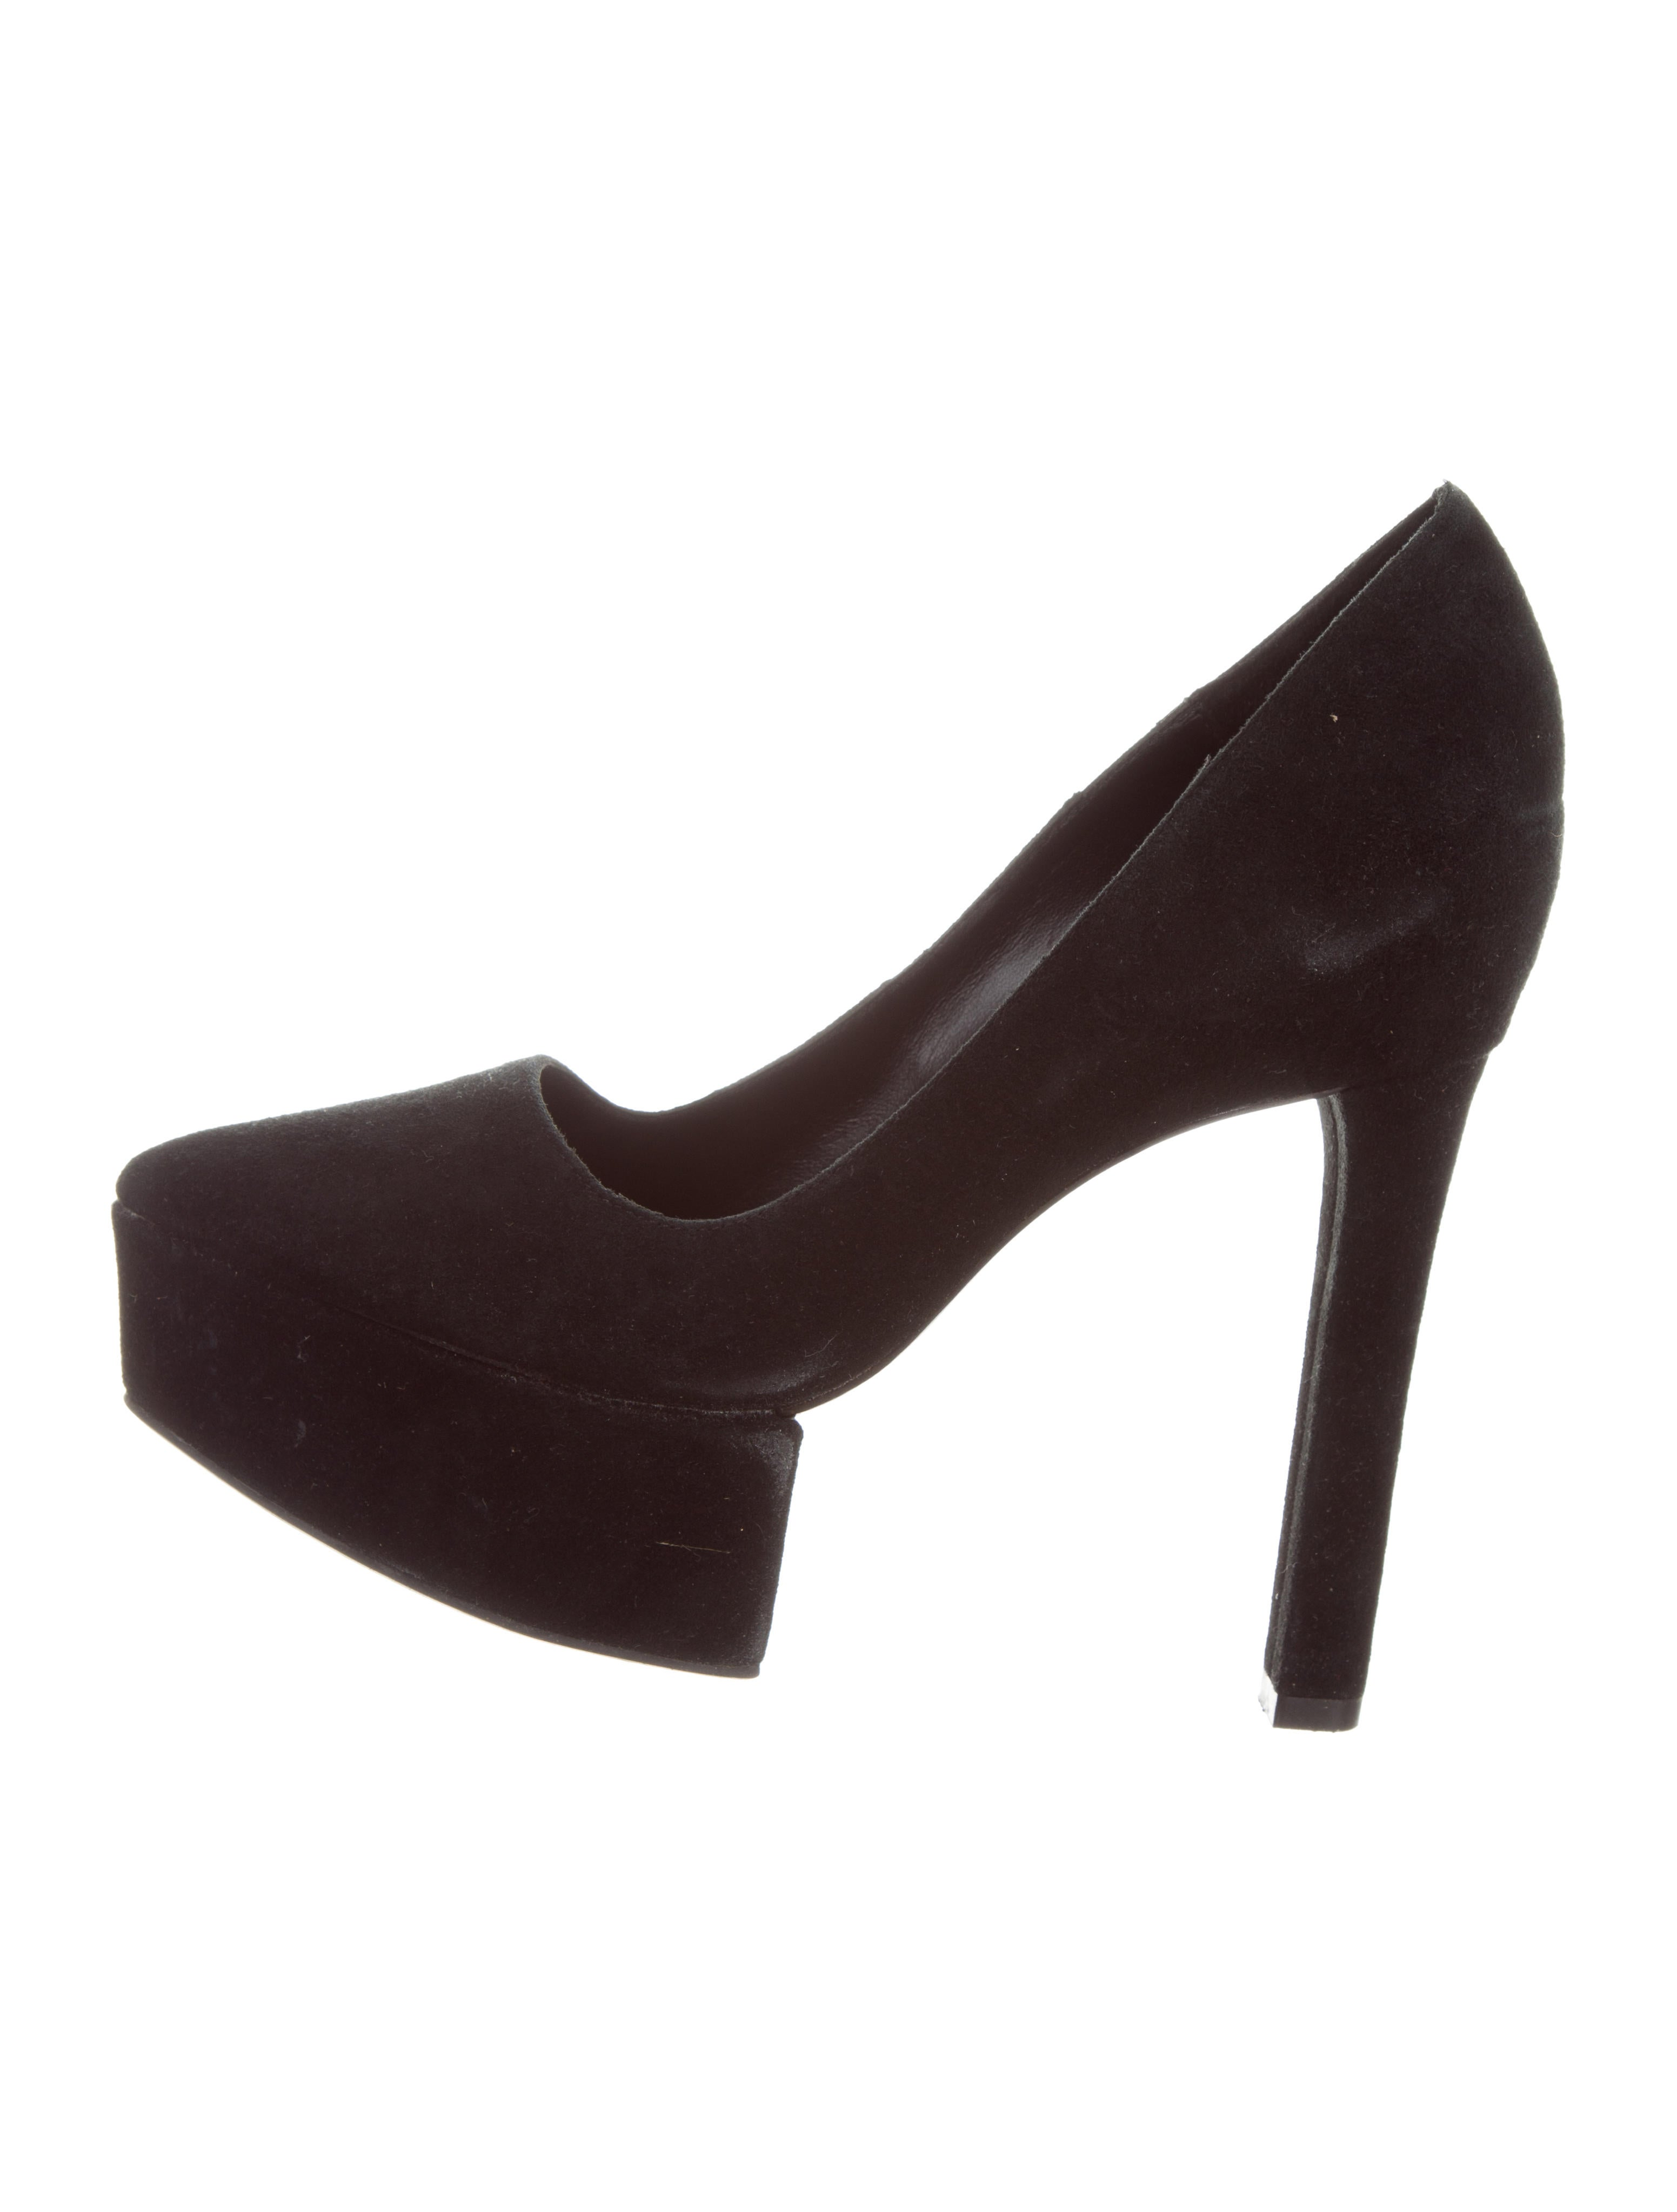 Theory Suede Platform Pumps outlet discount cheap discounts outlet authentic cheap sale amazon shop offer cheap price yTWUIWEJ